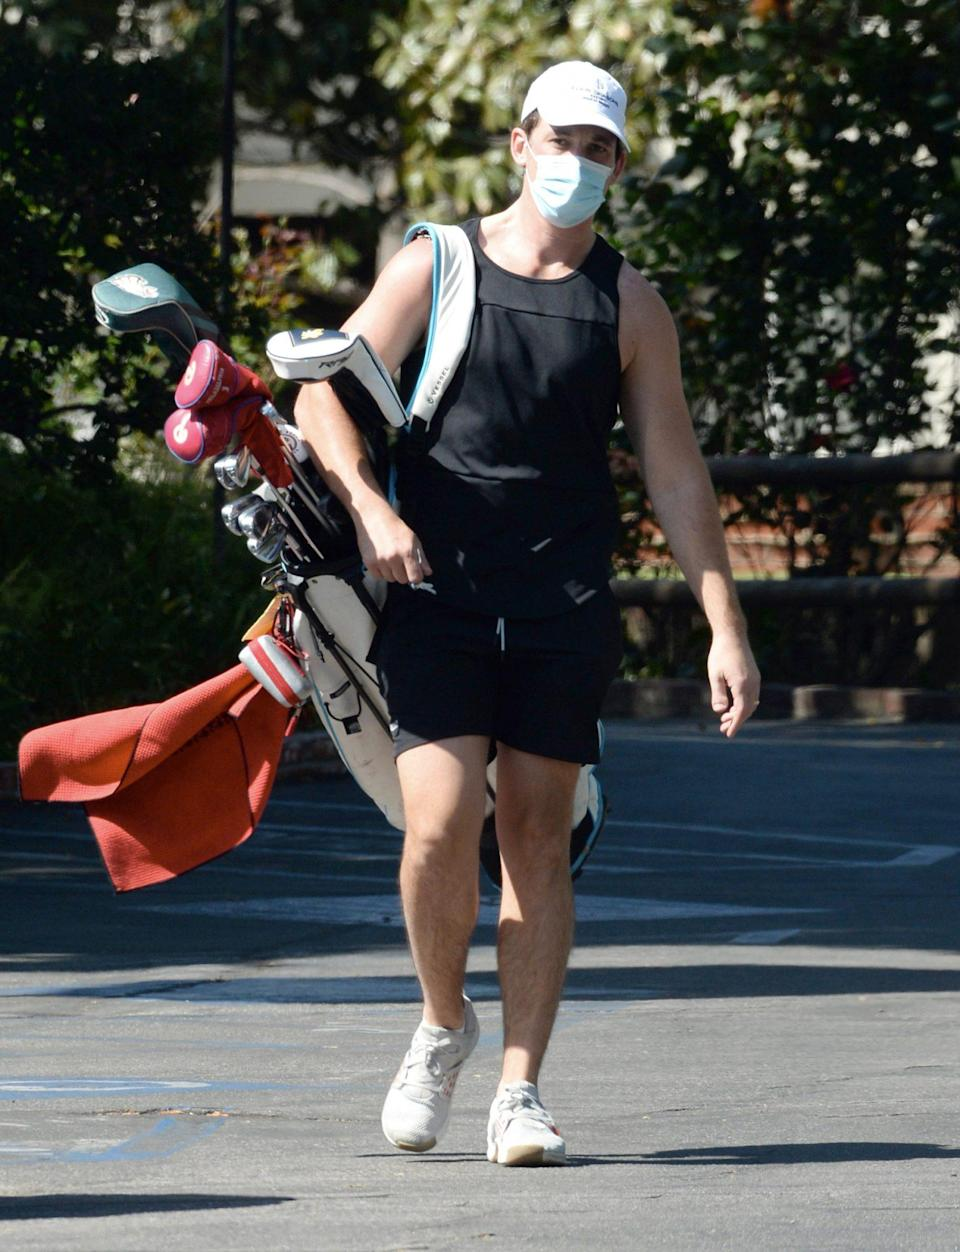 <p>Miles Teller carries his clubs as he heads to the golf course on Tuesday in L.A.</p>